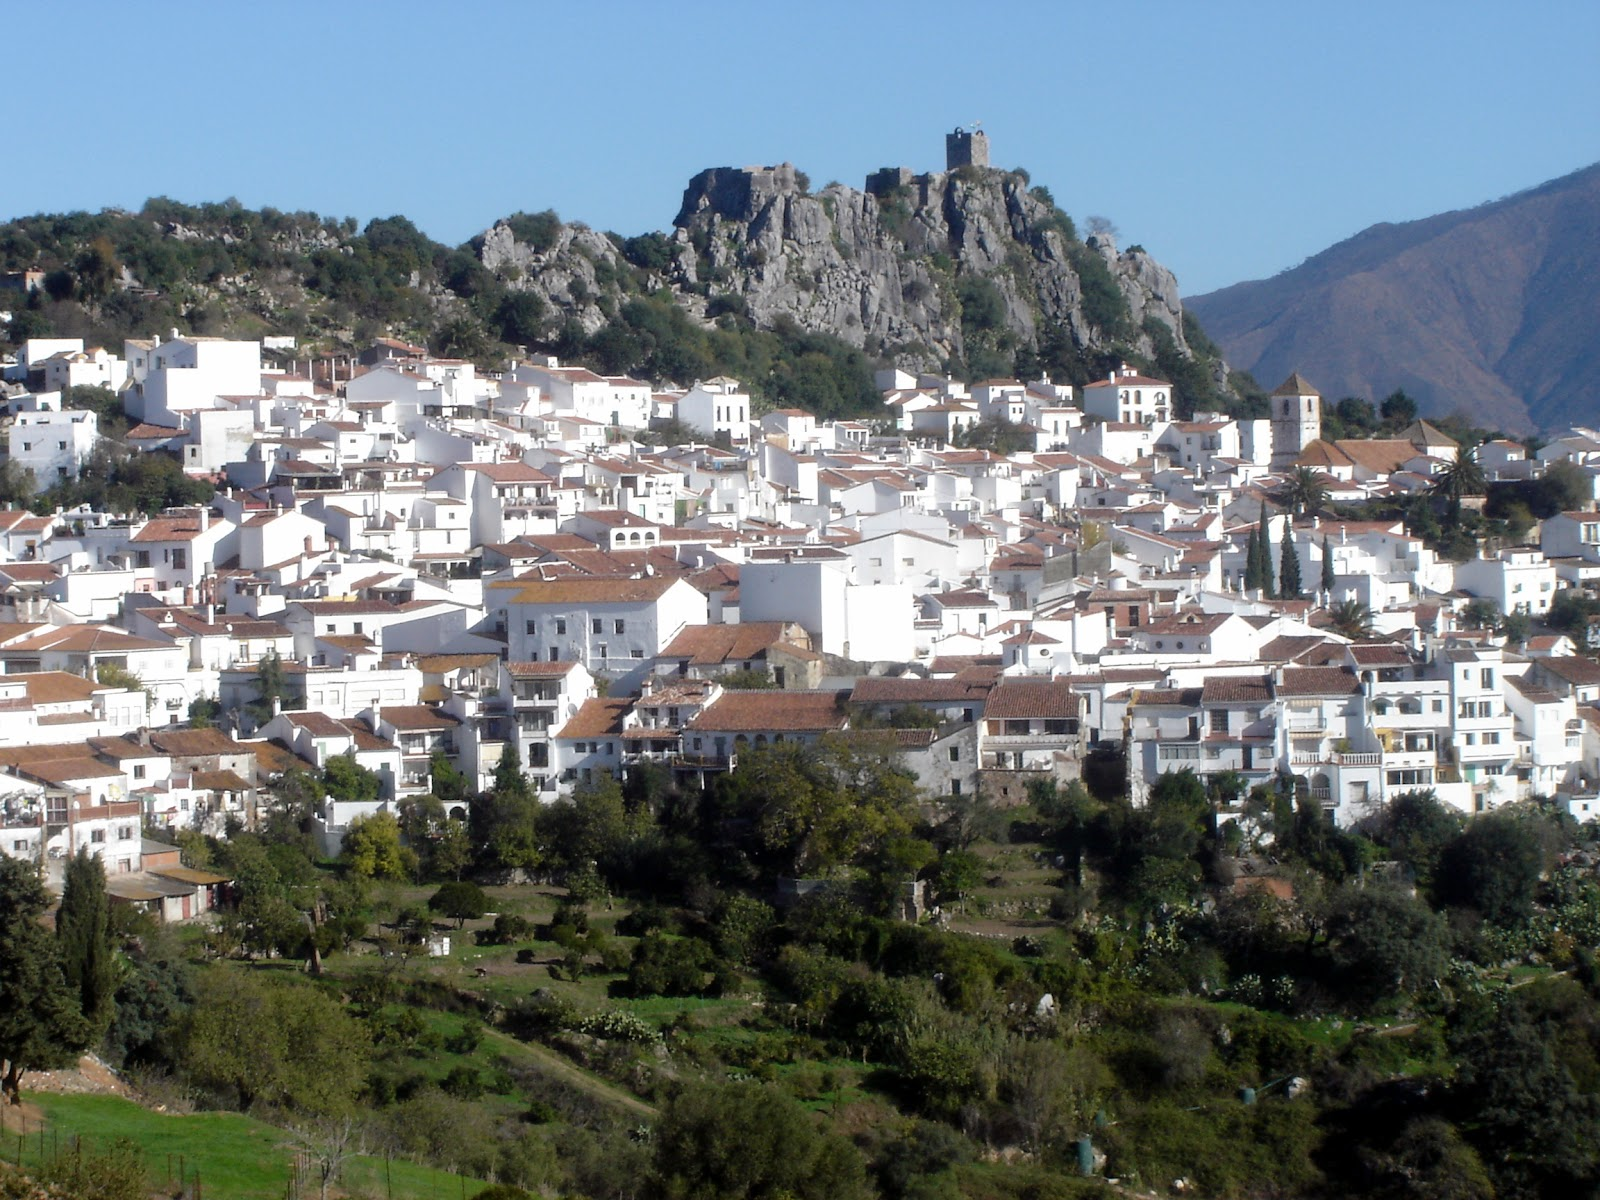 Postcards from Spain: Gaucín (one of the White Towns of Andalucía)